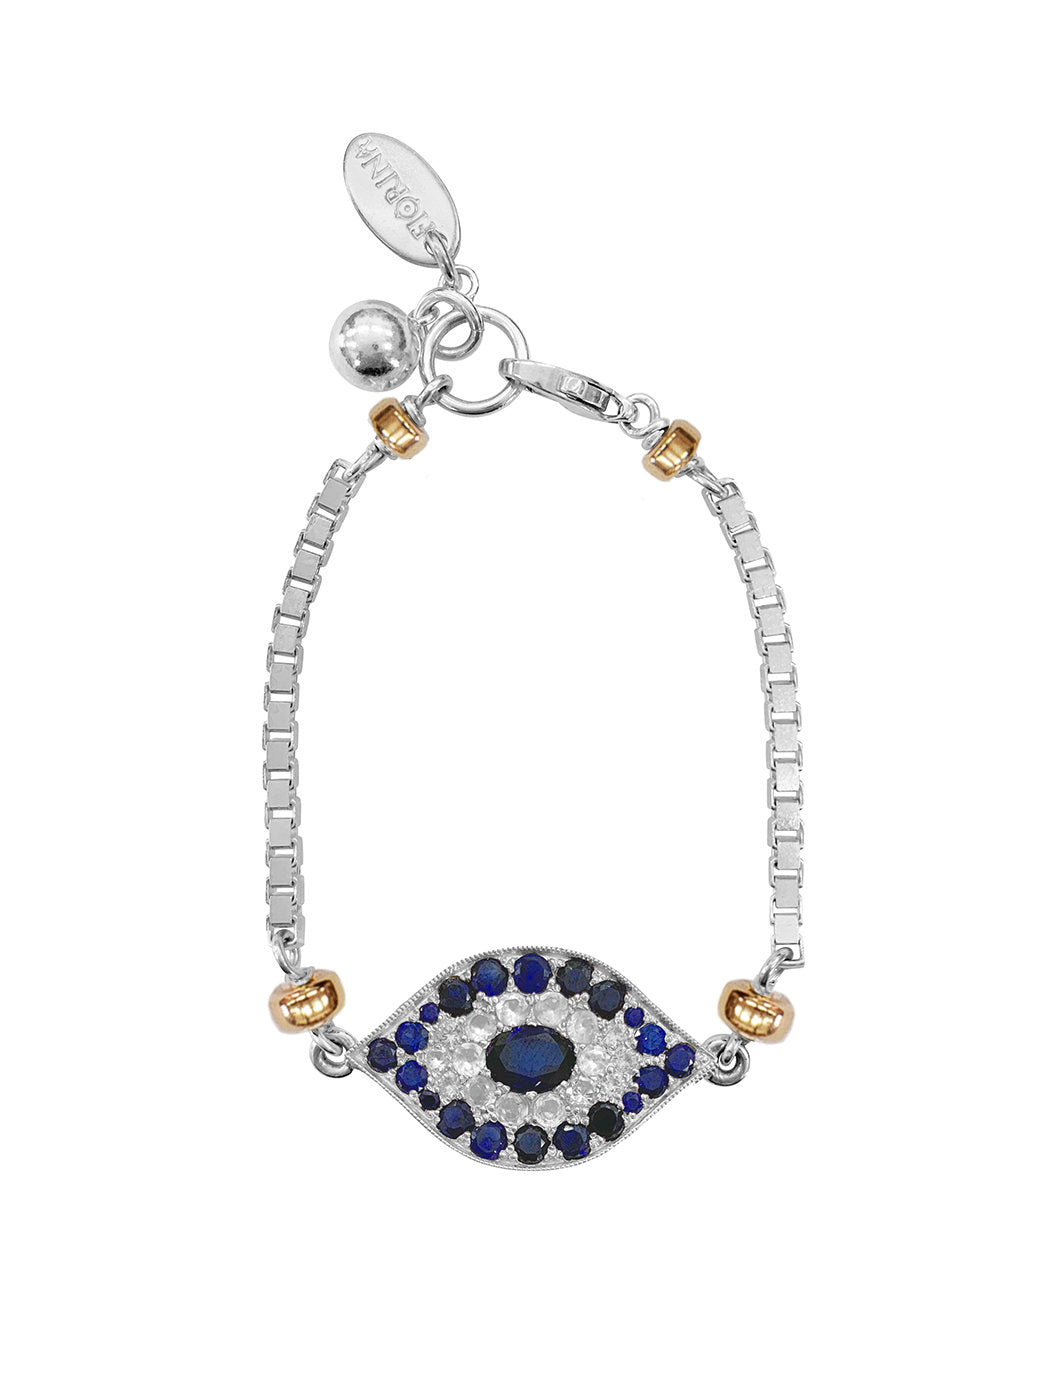 Fiorina Jewellery Oracle Eye Bracelet Blue and White Sapphire